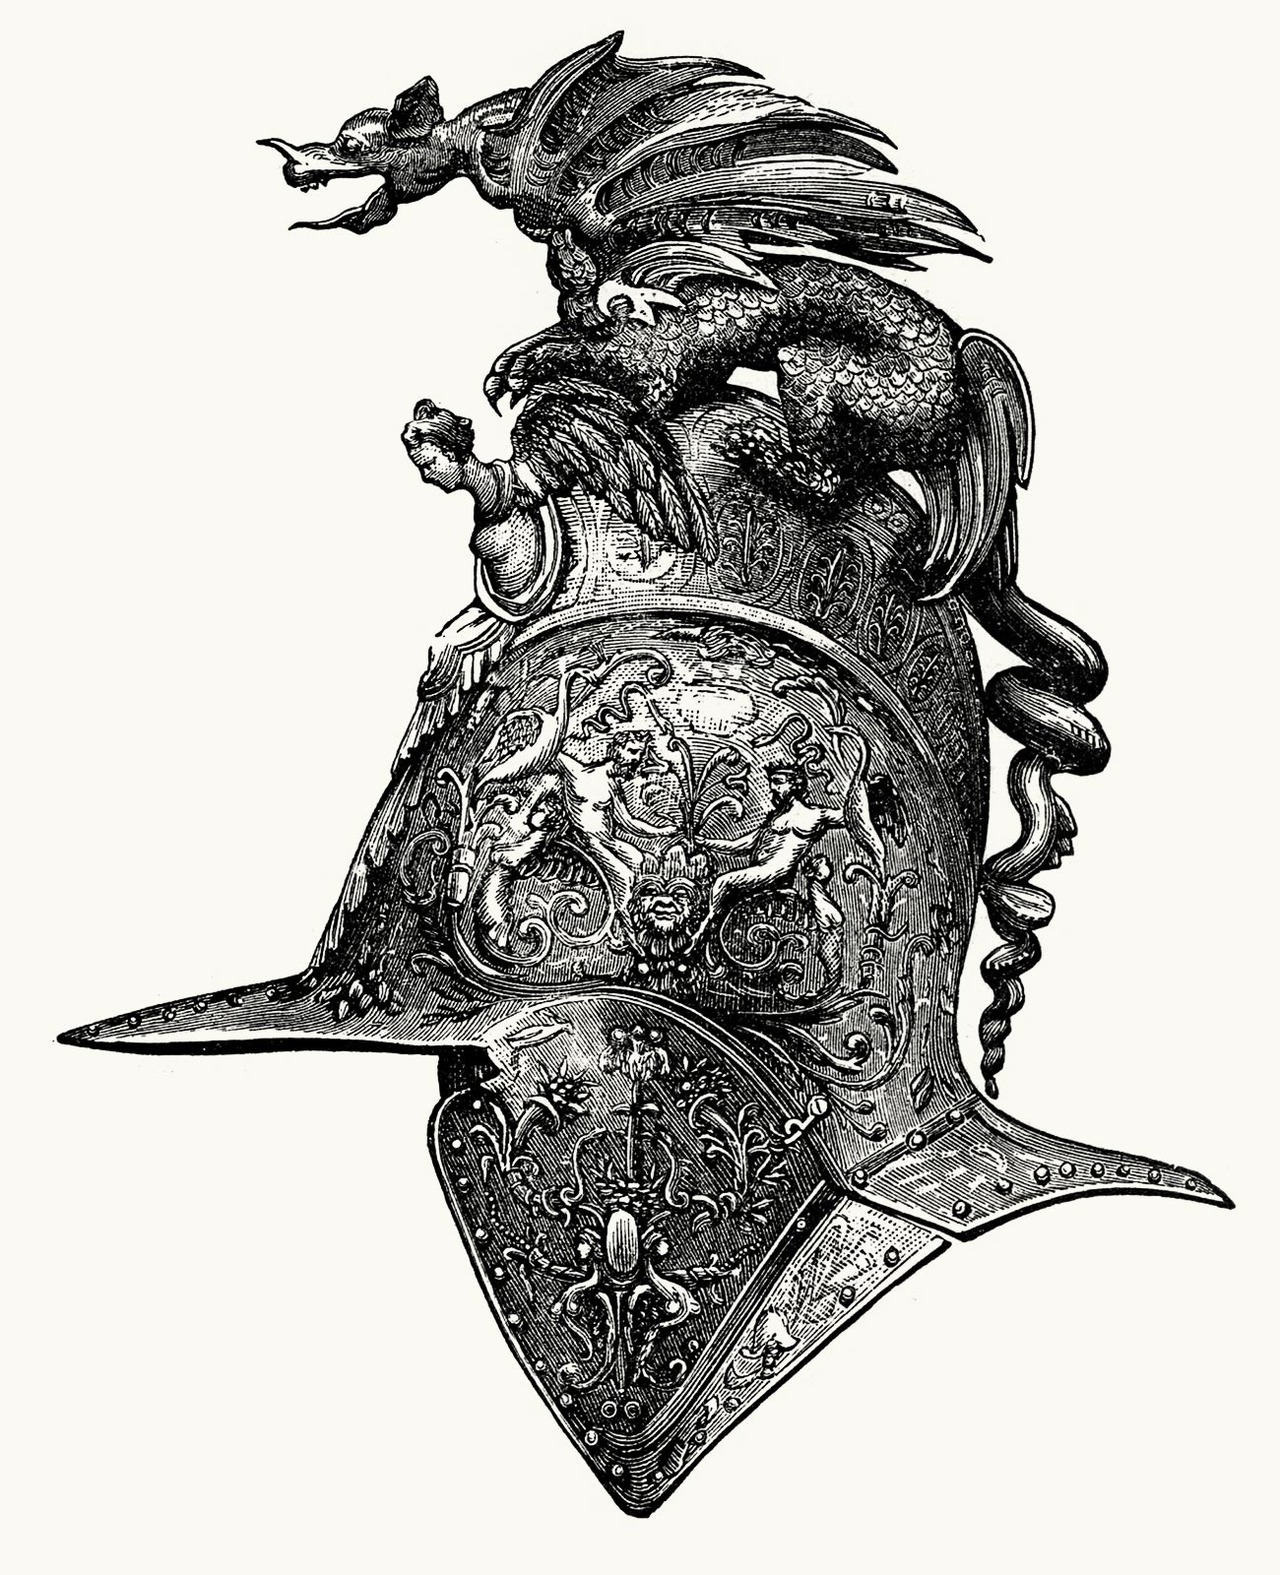 oldbookillustrations:  Helmet (Italian department) From The great Centennial exhibition critically described and illustrated, by Phillip T. Sandhurst, Philadelphia and Chicago, circa 1876. (Source: archive.org)